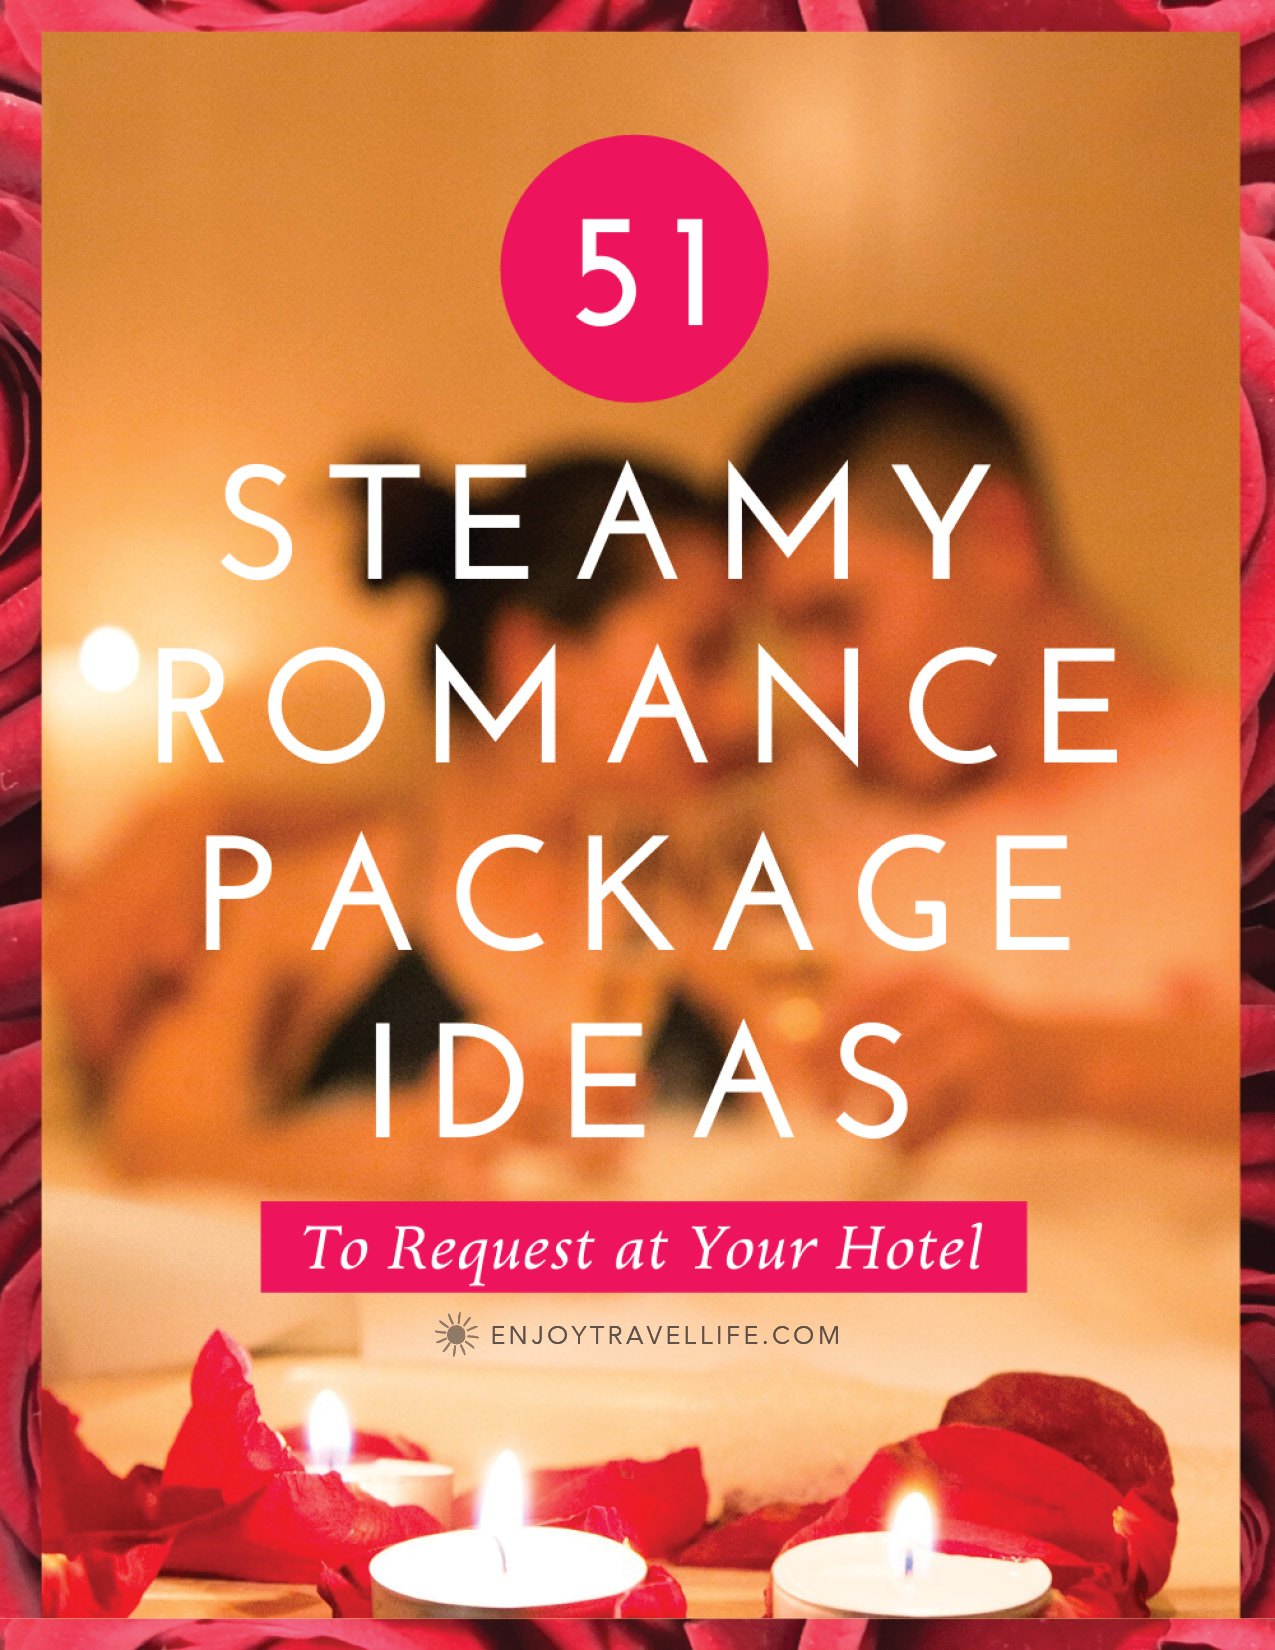 steamy romance package ideas to request at your hotel